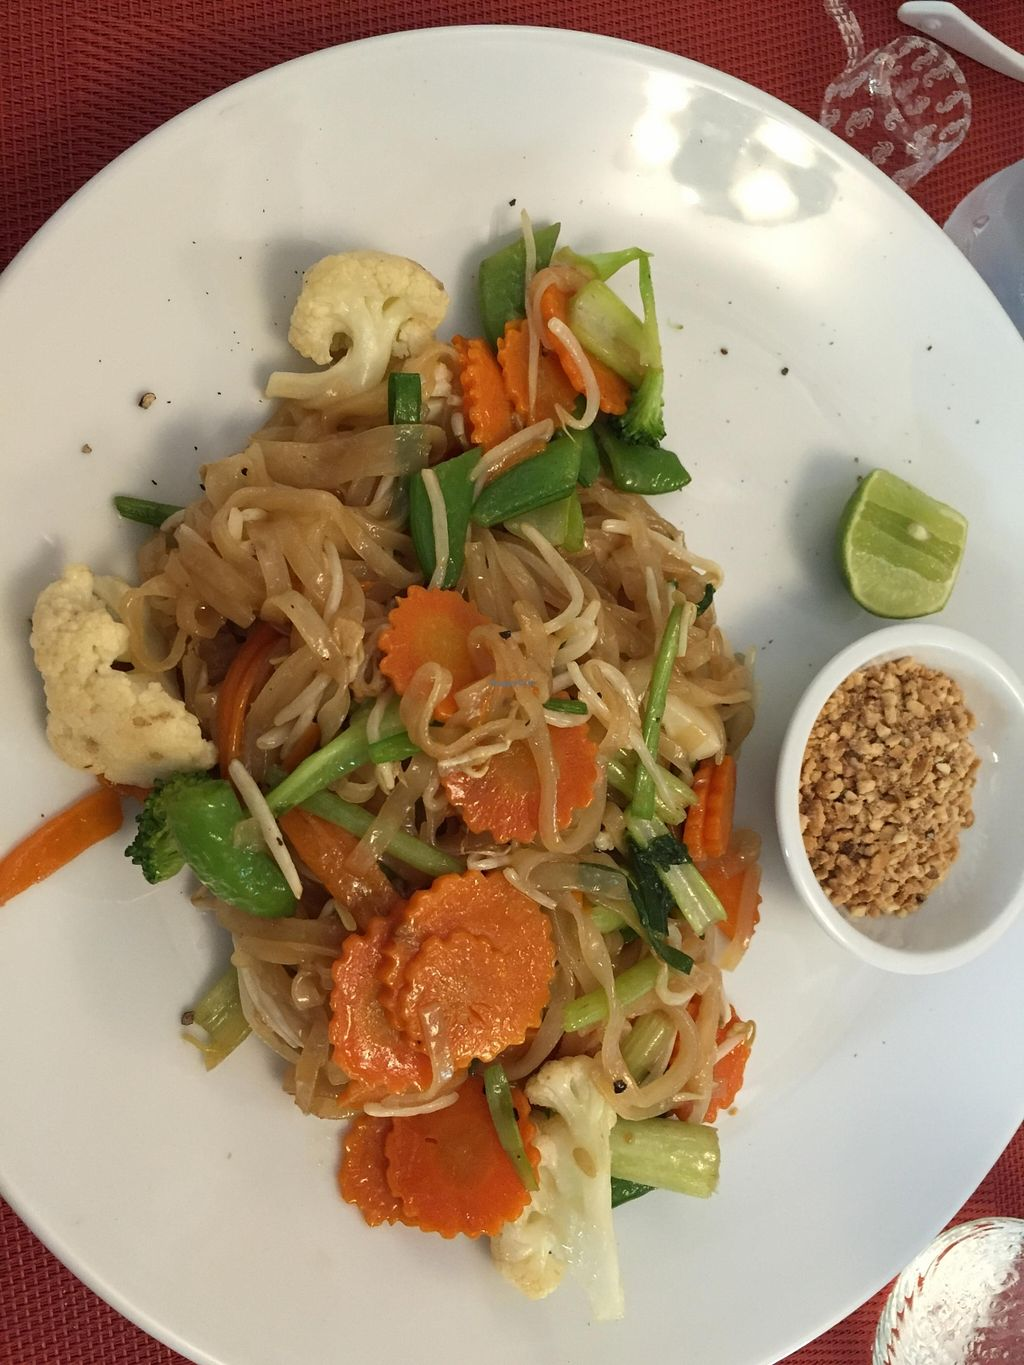 """Photo of Amici Miei Hotel  by <a href=""""/members/profile/Rocker"""">Rocker</a> <br/>Vegan pad thai <br/> November 18, 2015  - <a href='/contact/abuse/image/66079/125413'>Report</a>"""